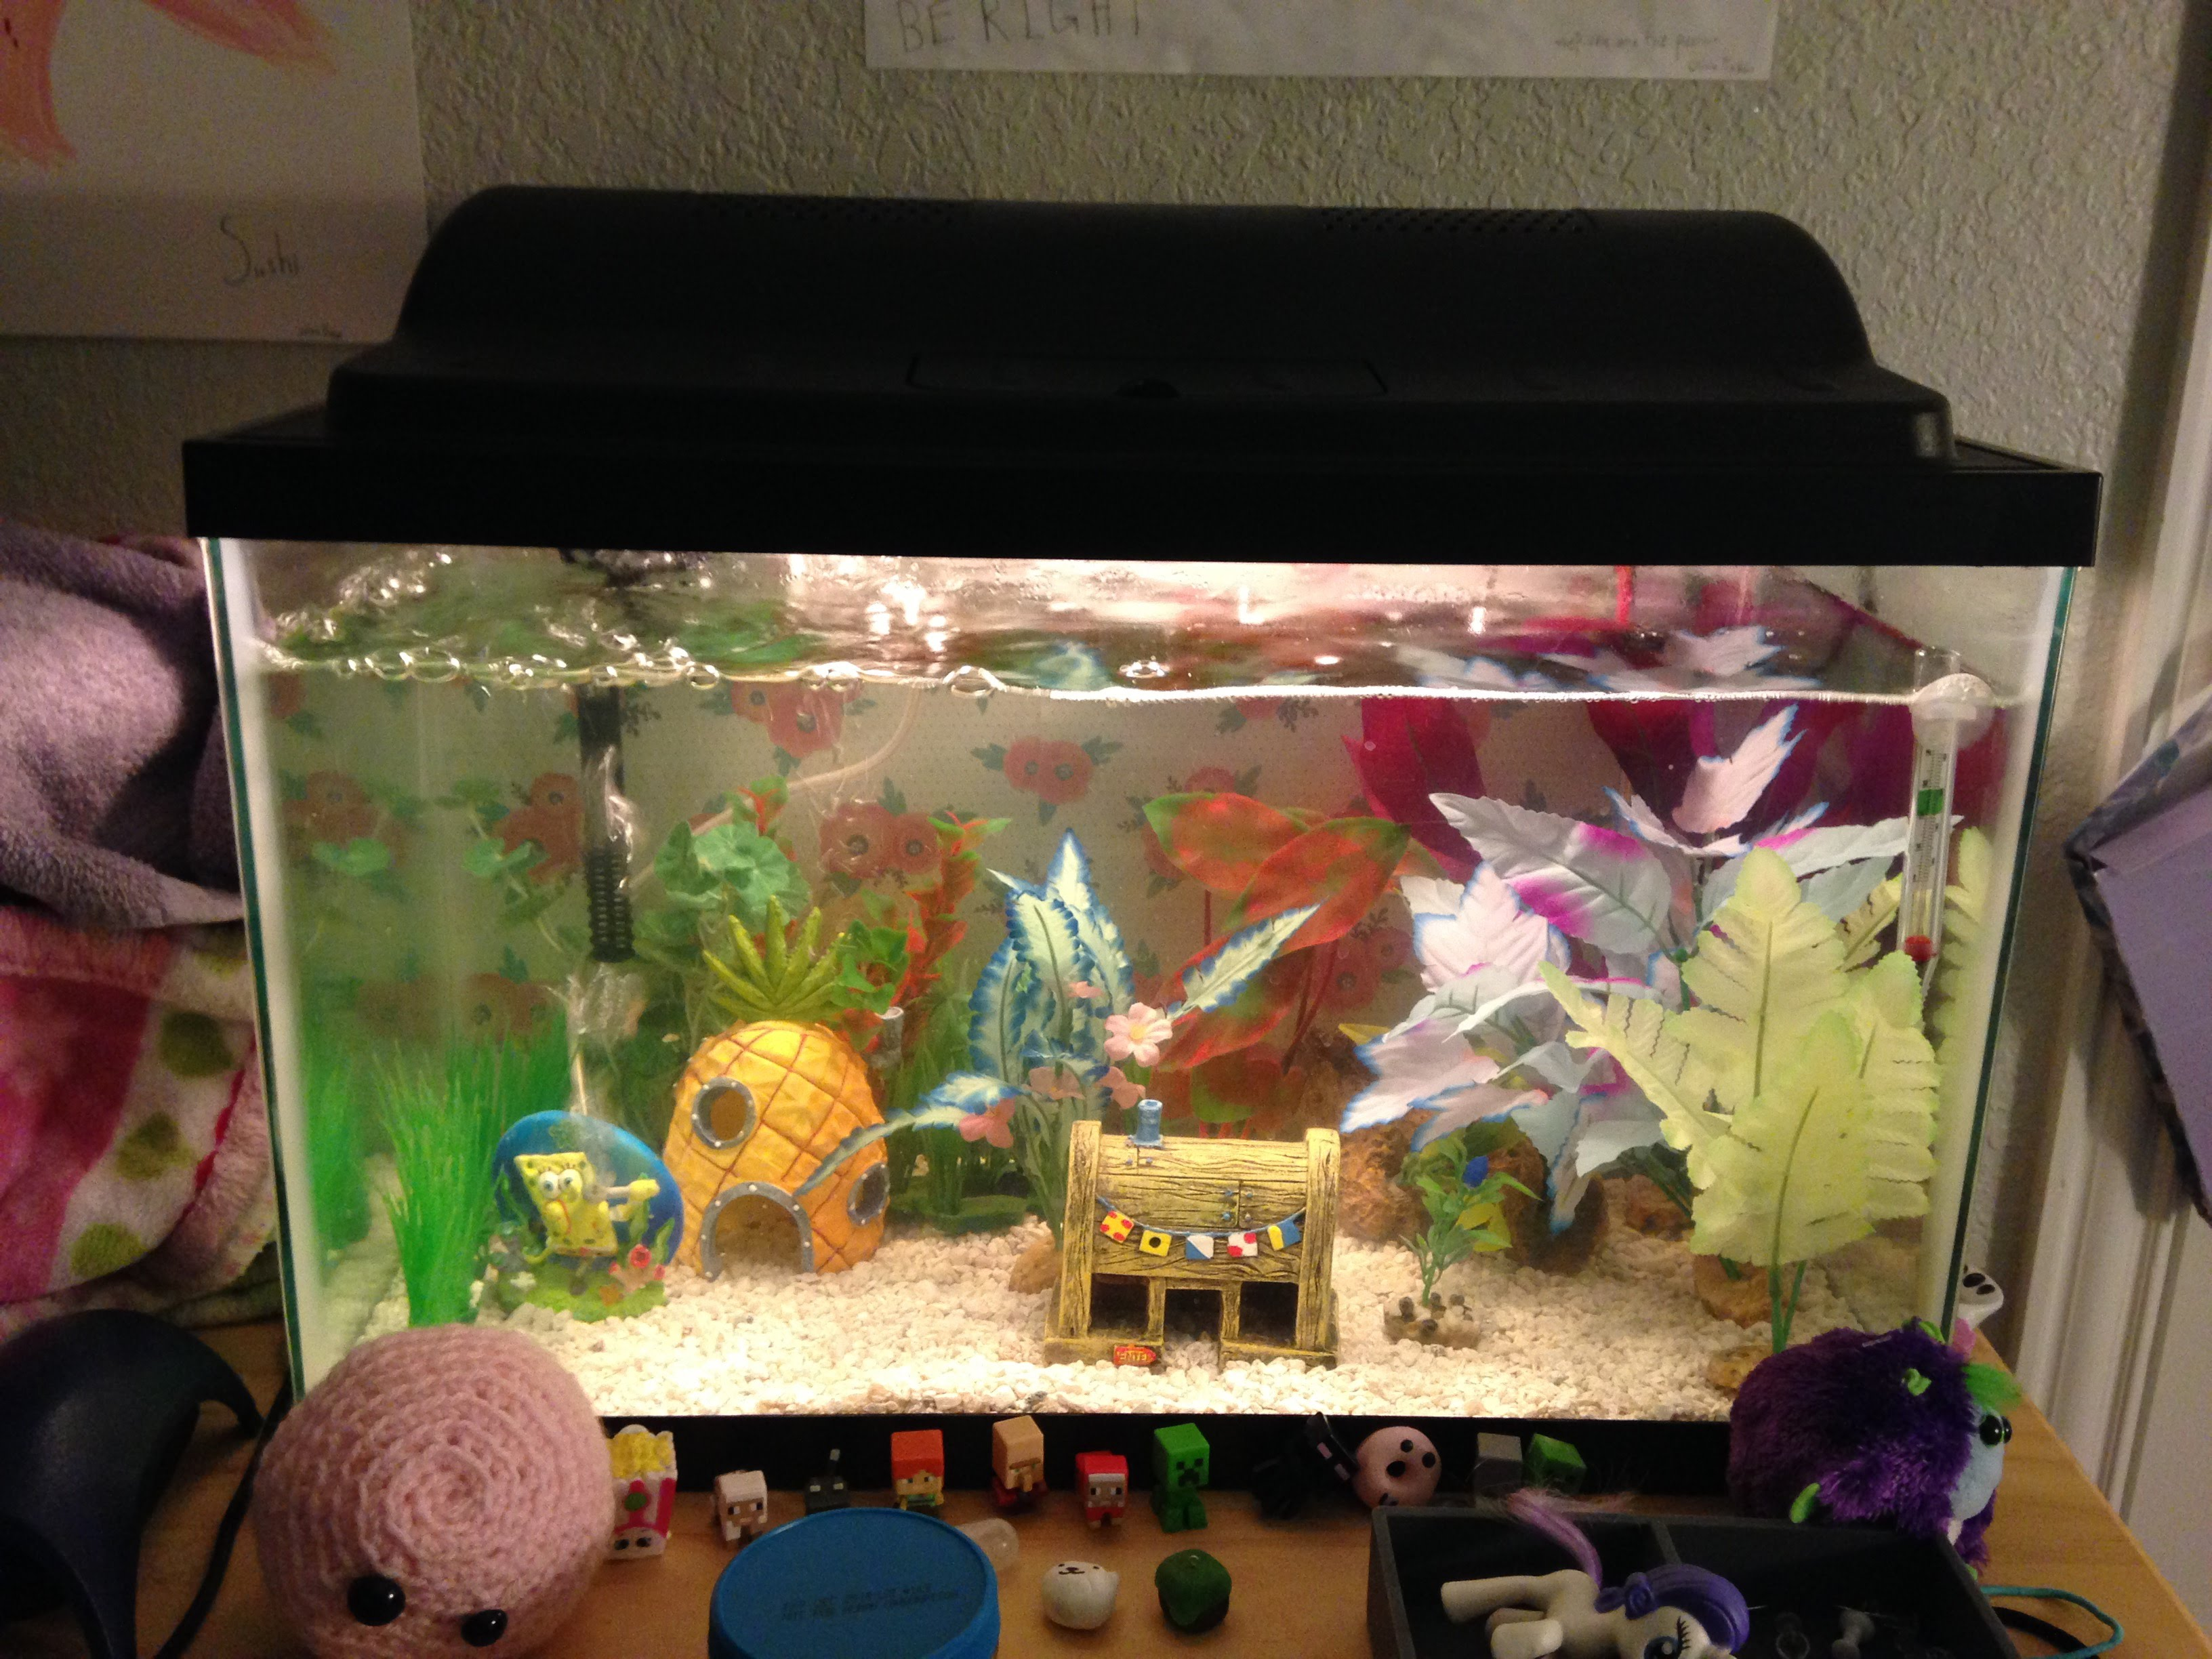 10 Gallon Fish Tank And Also Fish Tank Filter System And Also 10 Gallon Fish Aquarium Stand And Also Aquarium Hood For 10 Gallon Tank 10 Gallon Fish Tank Choices You